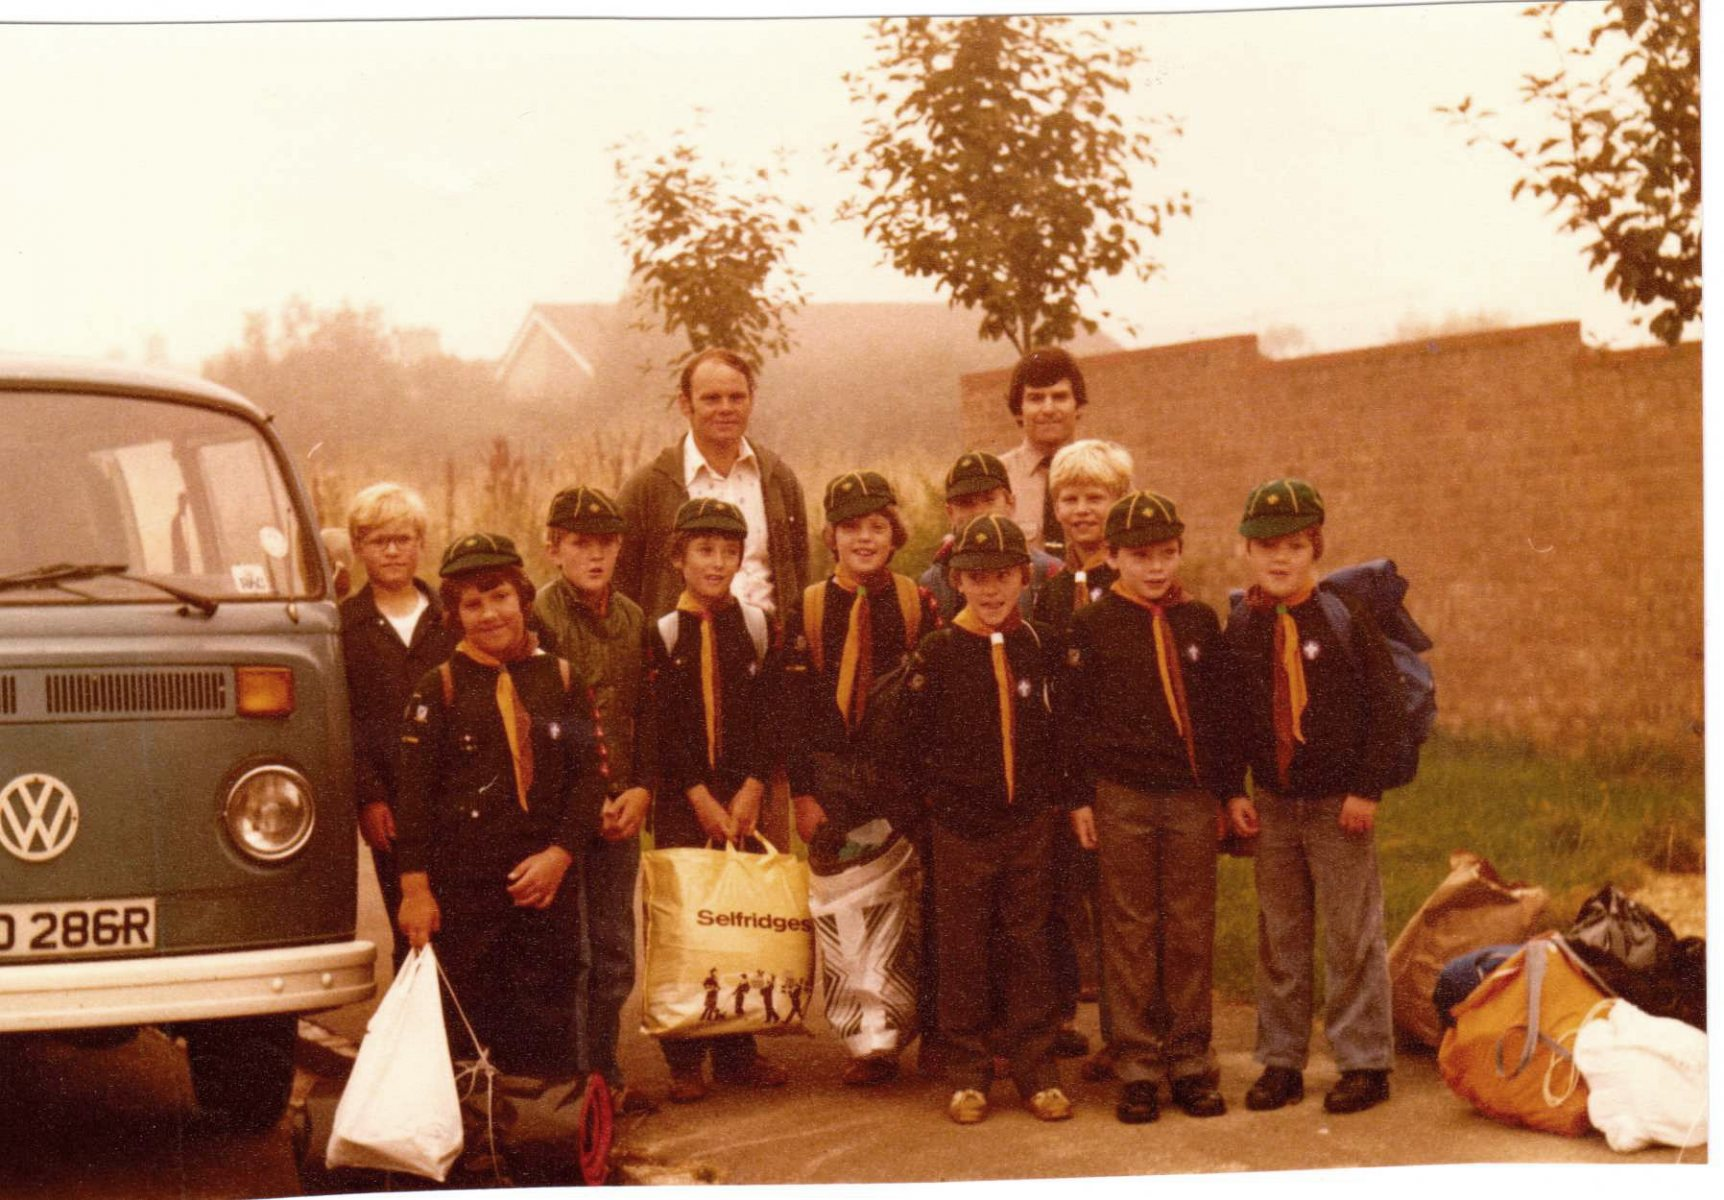 c. 1980 Bartons' Scout Group. Adults: left Lewis Yates (helper), right John Keefe (leader). Back row l to r: Kevin Benn, ?, Stephan Cox, Paul Spry, Tim Yates, Martin Benn. Front row l to r: Matthew Hansen, ?, ?, Guy ?.